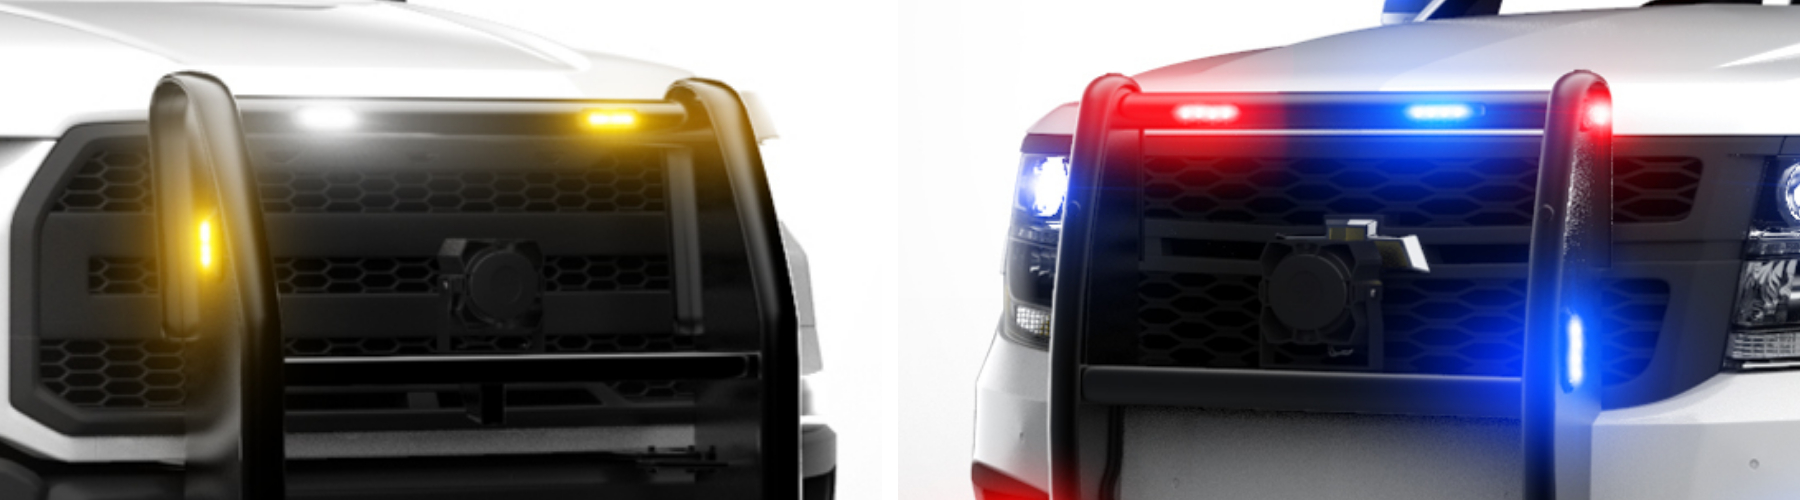 LED SURFACE MOUNT GRILLE warning lights POLICE LIGHTS